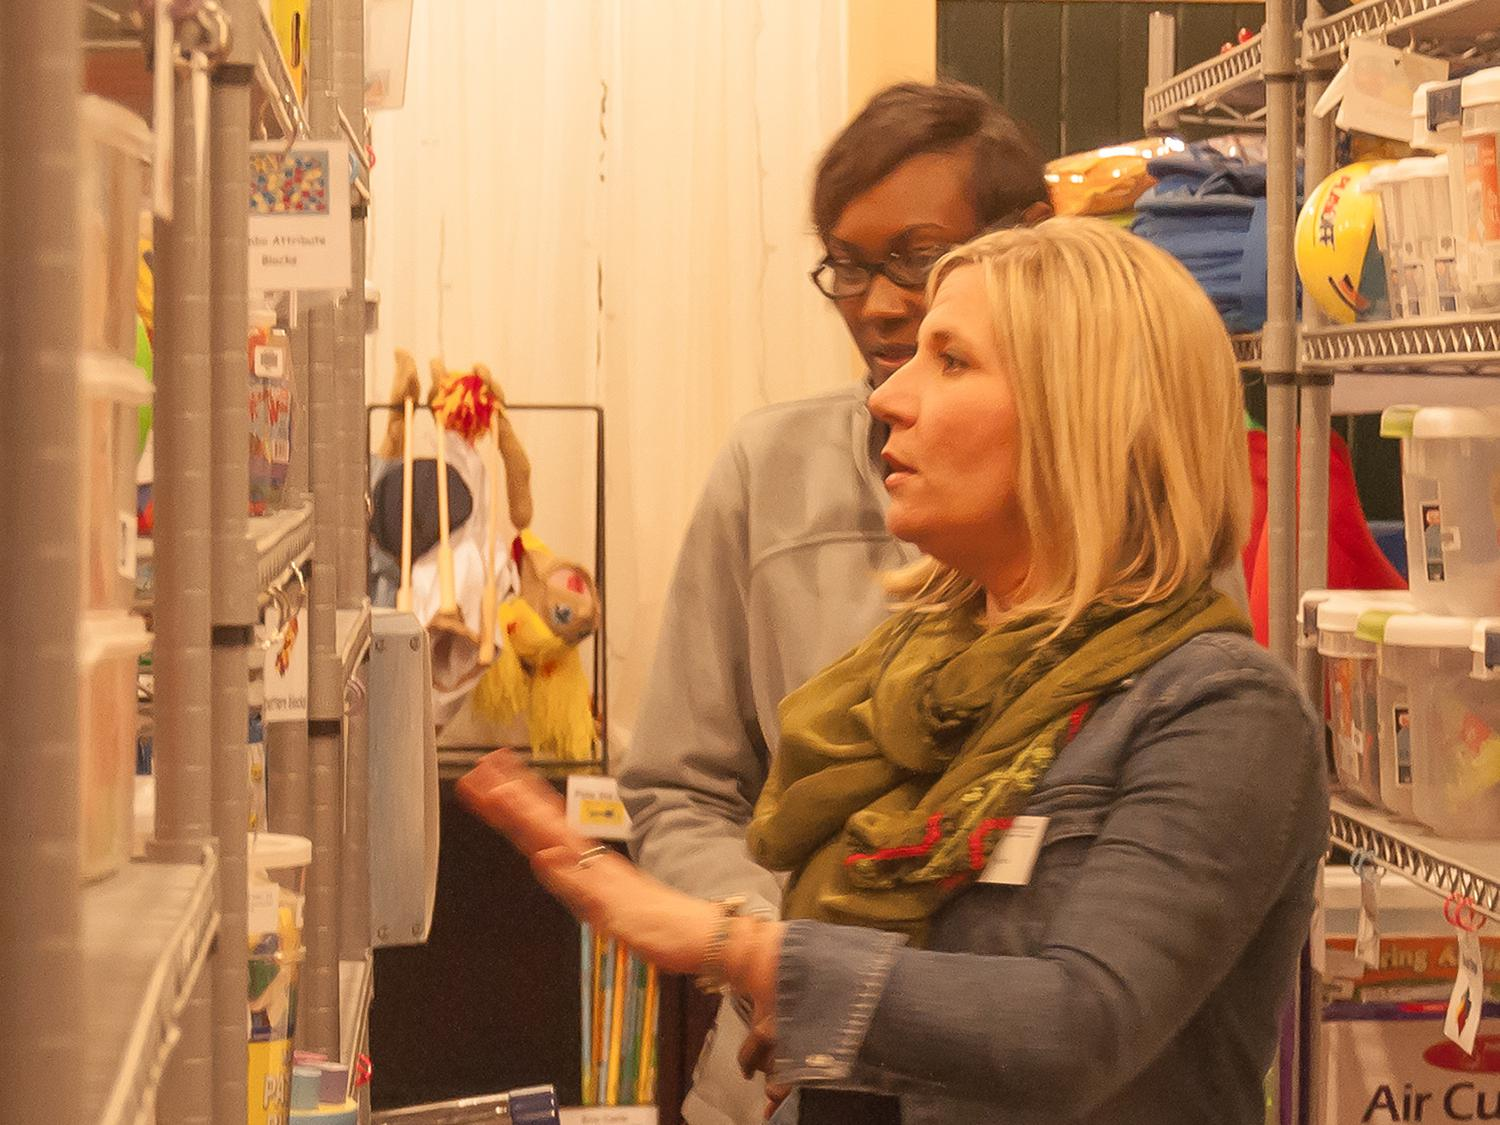 Chrissie Ryals, an Extension associate with the Early Years Network, guides a local resident through resources available at the Central Mississippi Resource and Referral Center in Canton, Mississippi. (MSU Extension Service file photo)